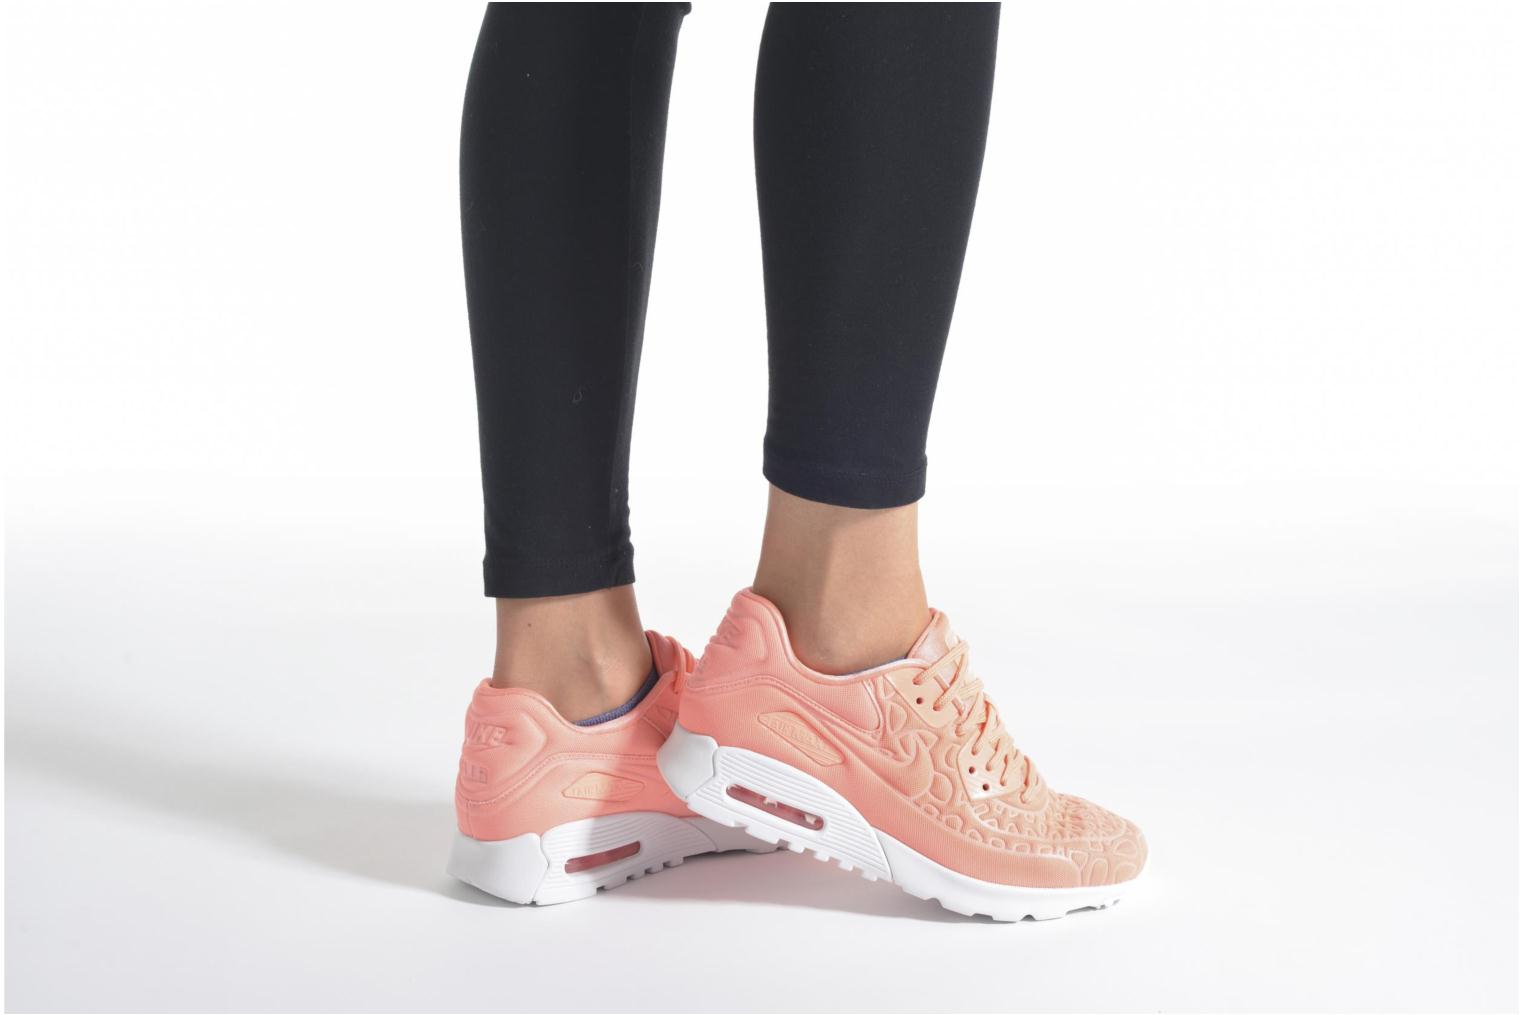 Sneakers Nike W Air Max 90 Ultra Plush Pink se forneden